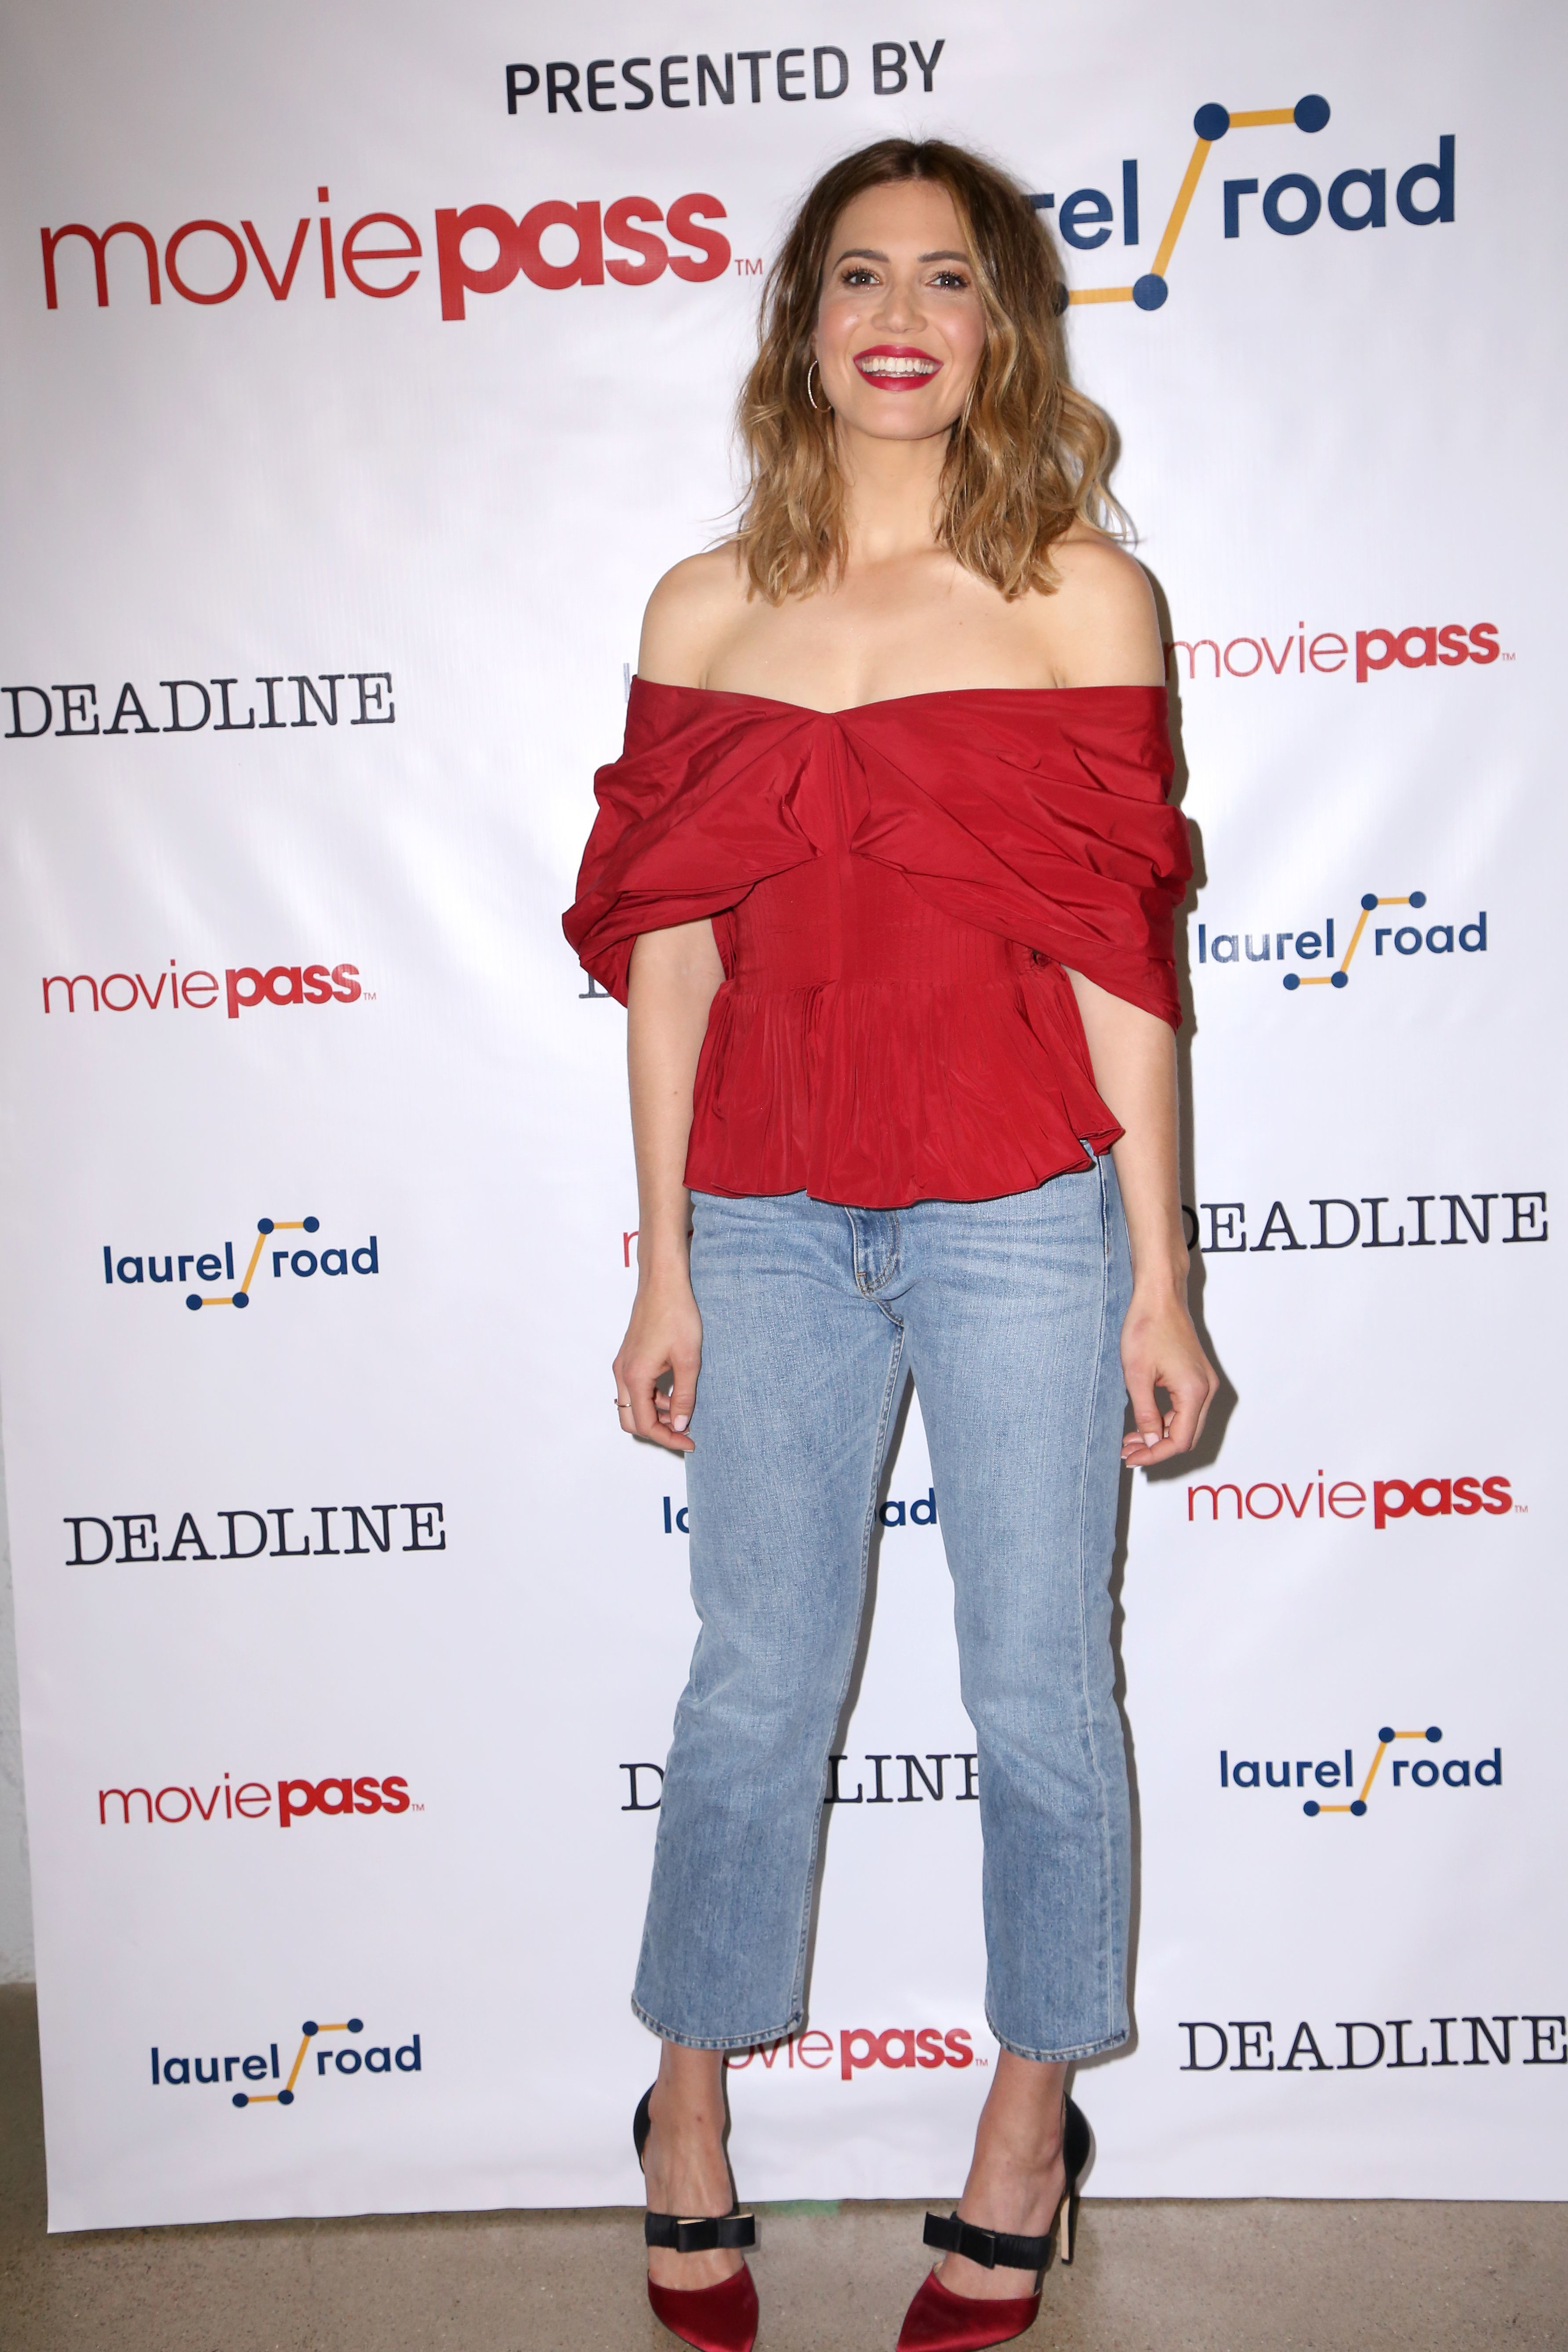 Mandy Moore visits the MoviePass lounge presented by Laurel Road at the Deadline Studio during SXSW in Austin, Texas, on March 12, 2018.